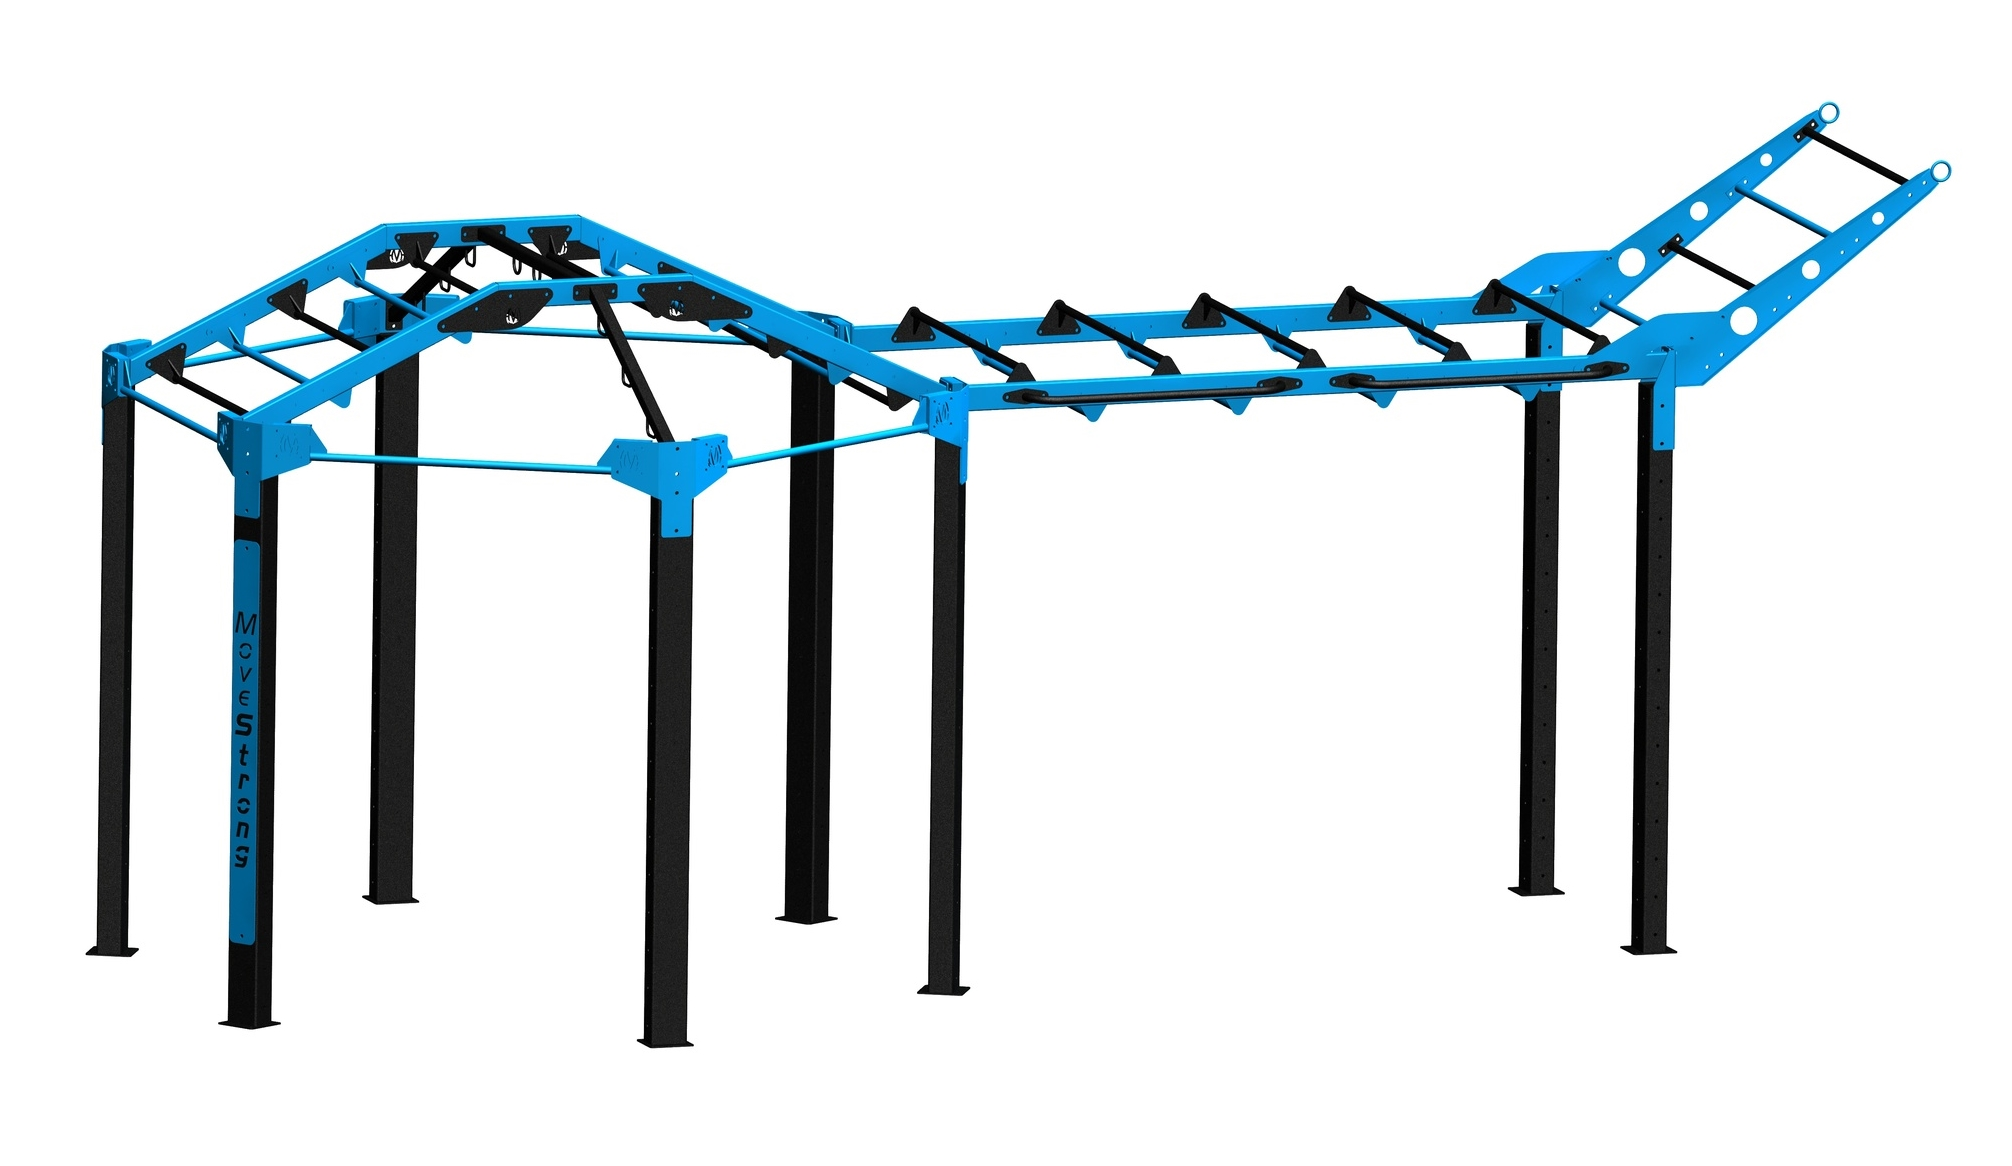 """Standard NOVA-6 FTS with extended Monkey Bar bridge   Add an extended horizontal bridge off the Nova-6 FTS for more training options  23'4"""" L x 10'2"""" W x 10'4""""' H (with tiered climber bar at end of bridge)*"""